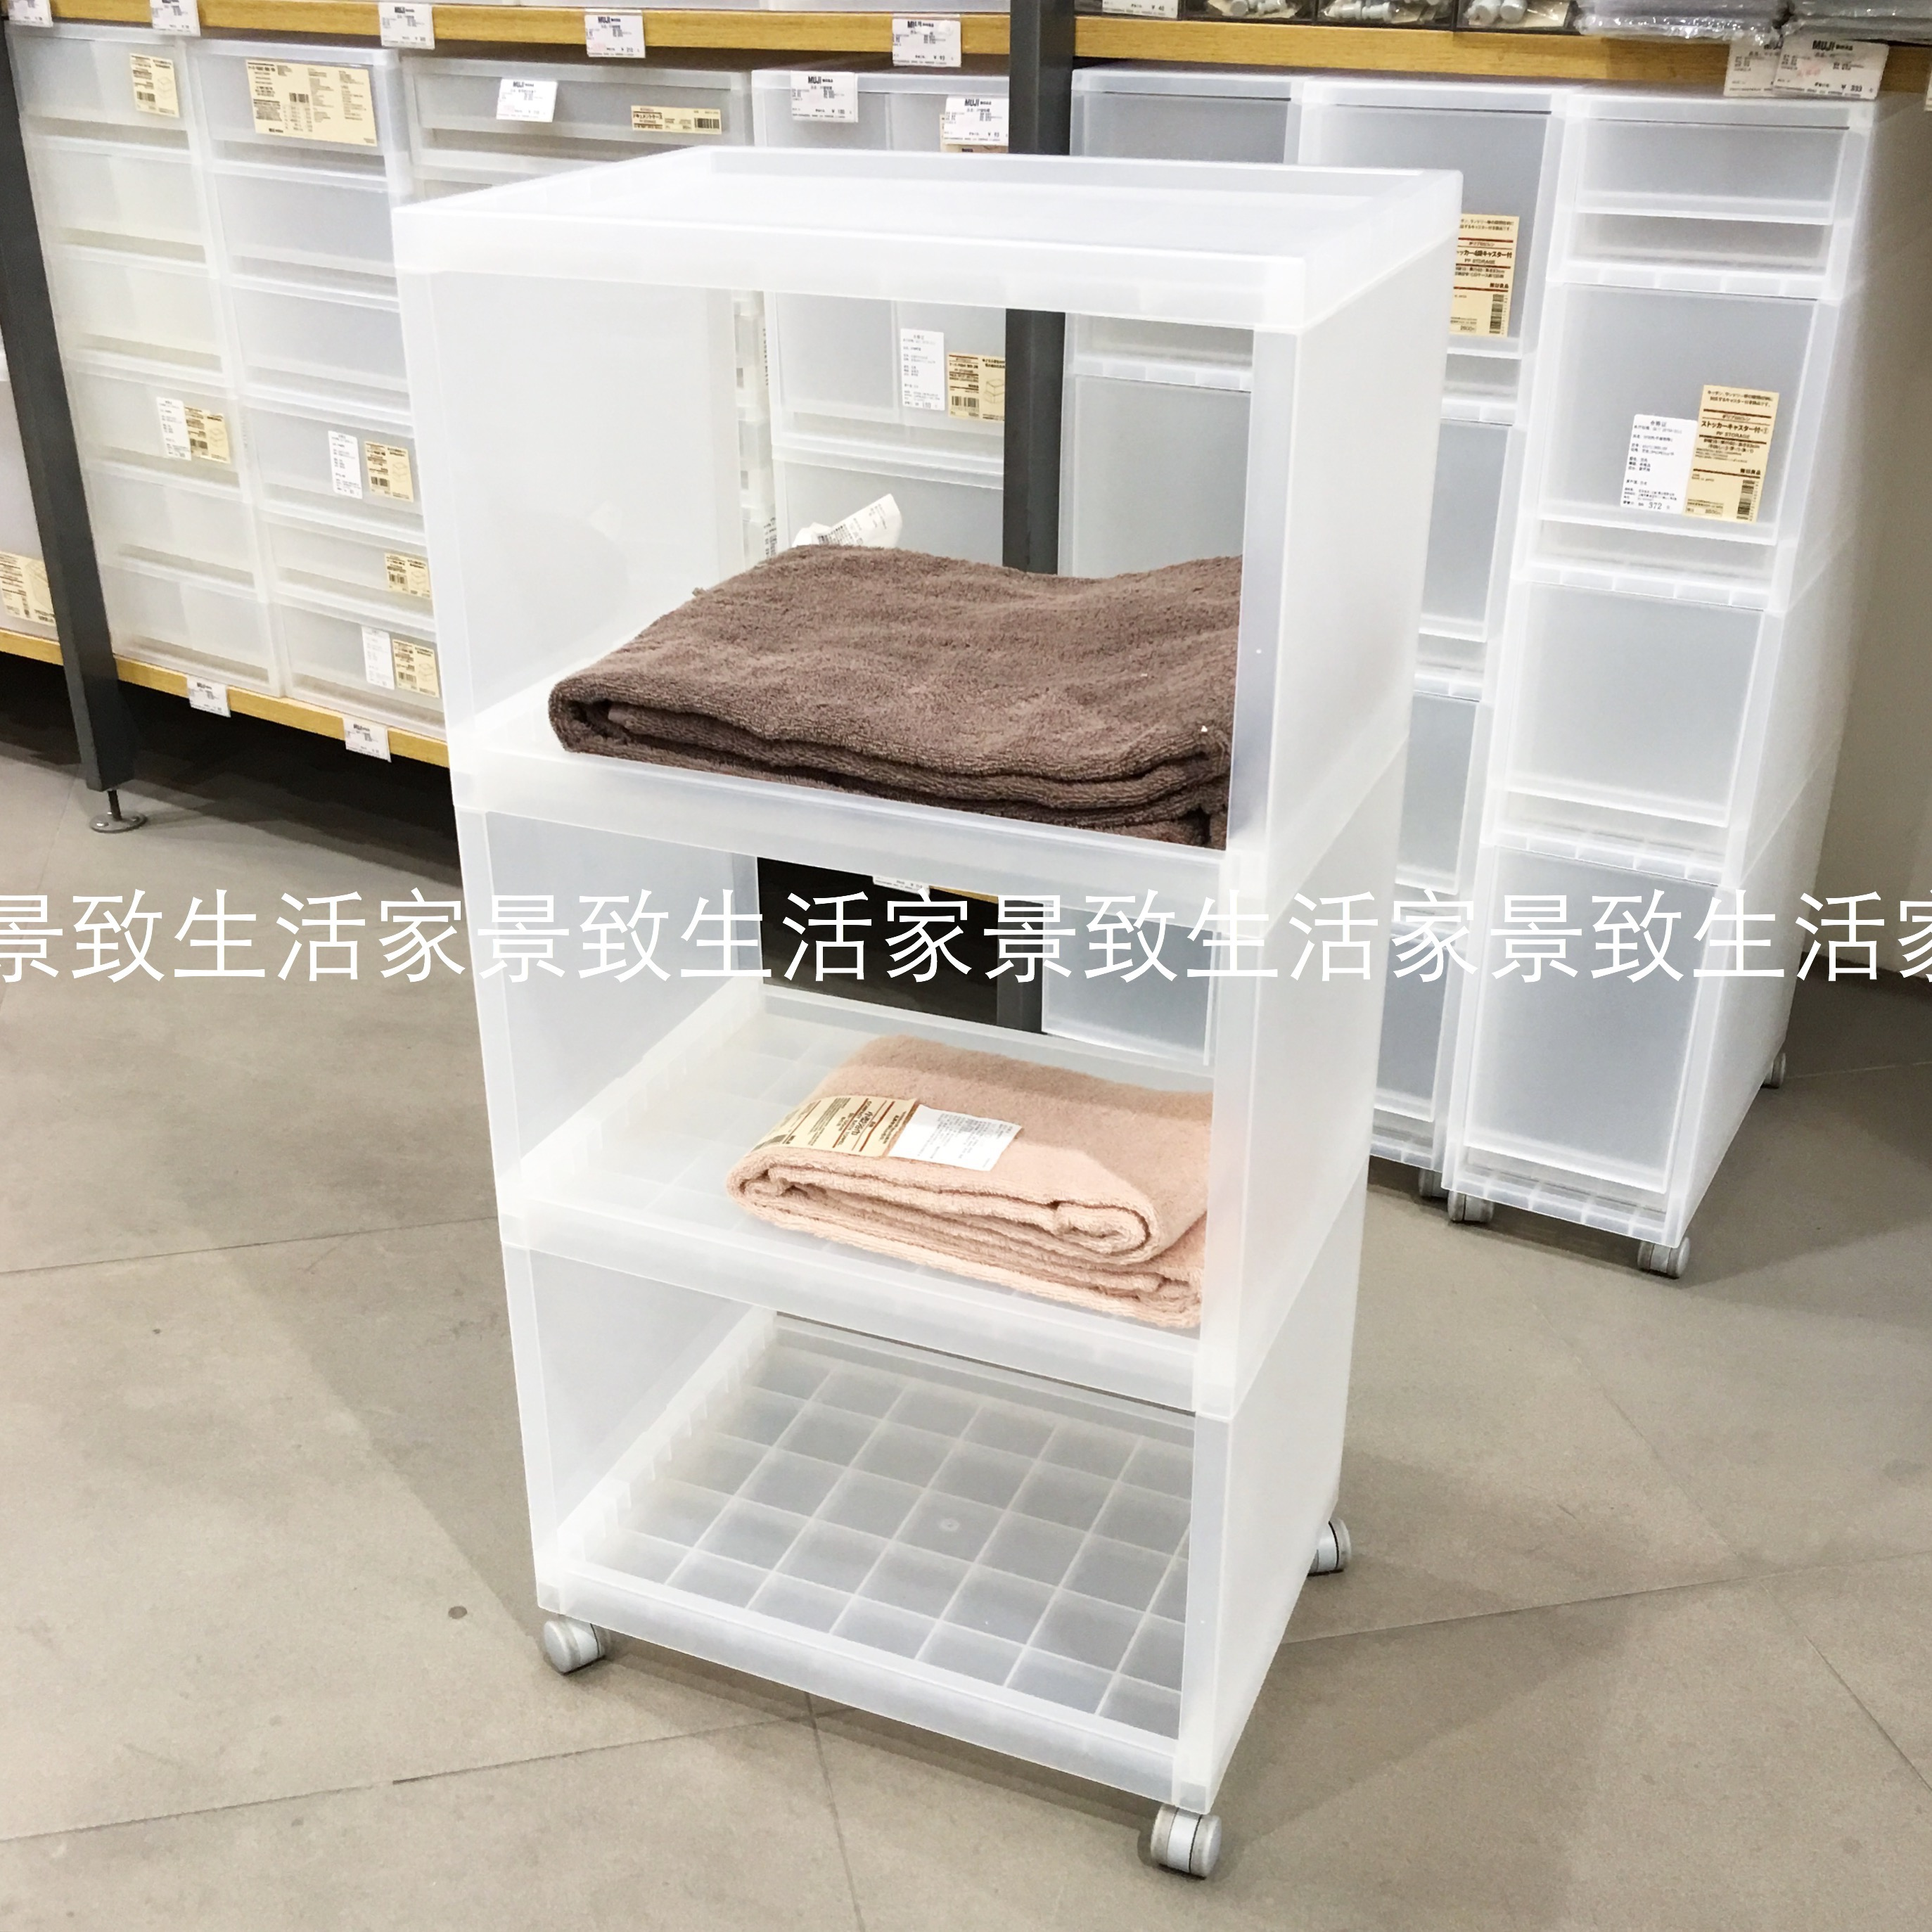 USD 61.97] MUJI muji PP three-tier rack with wheels for bathroom ...